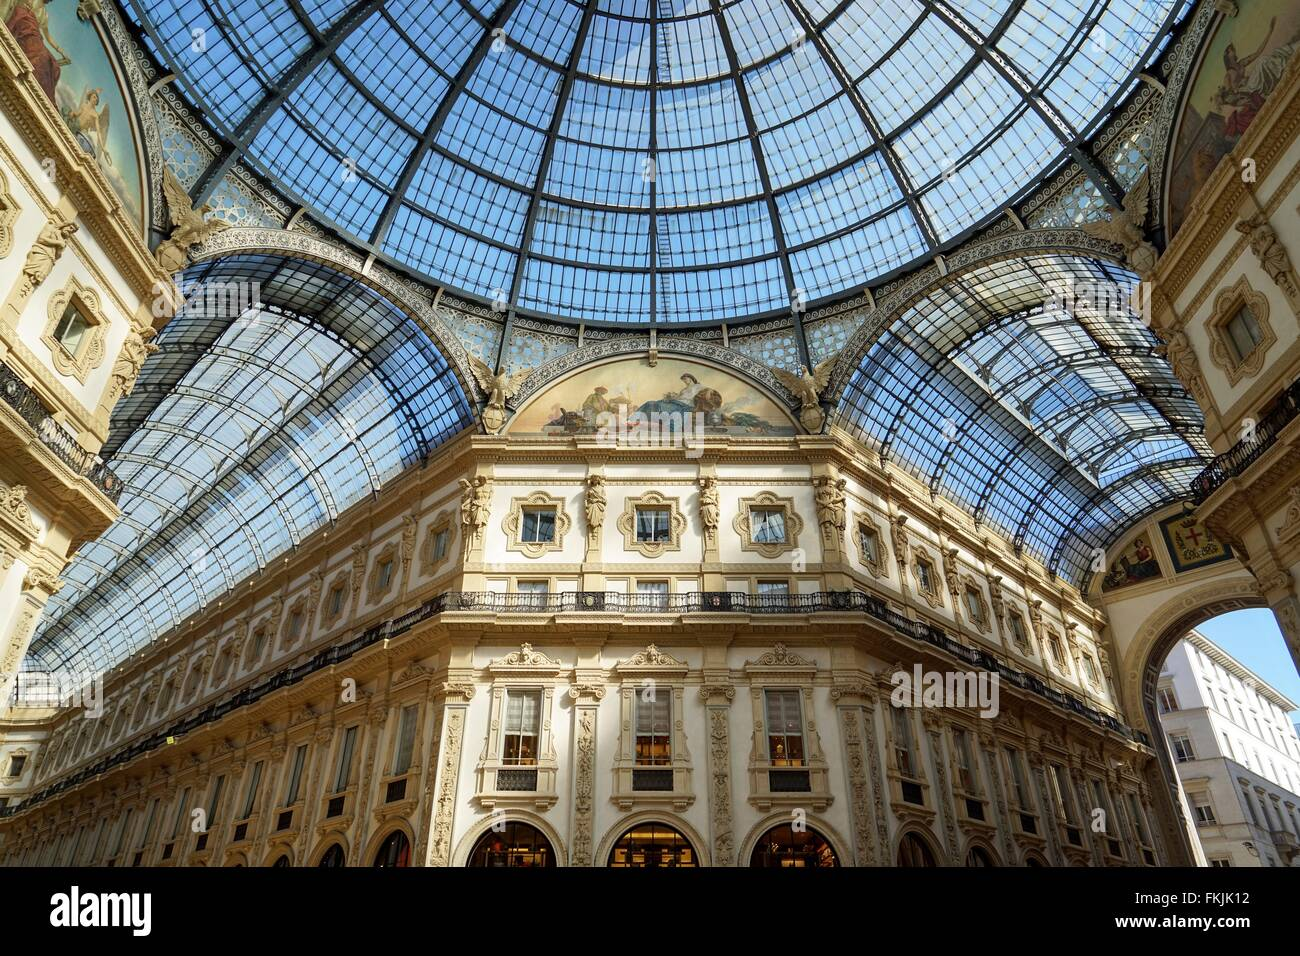 Italy: Inside Galleria Vittorio Emanuele II, Milan. Photo from 3. March 2016. Stock Photo